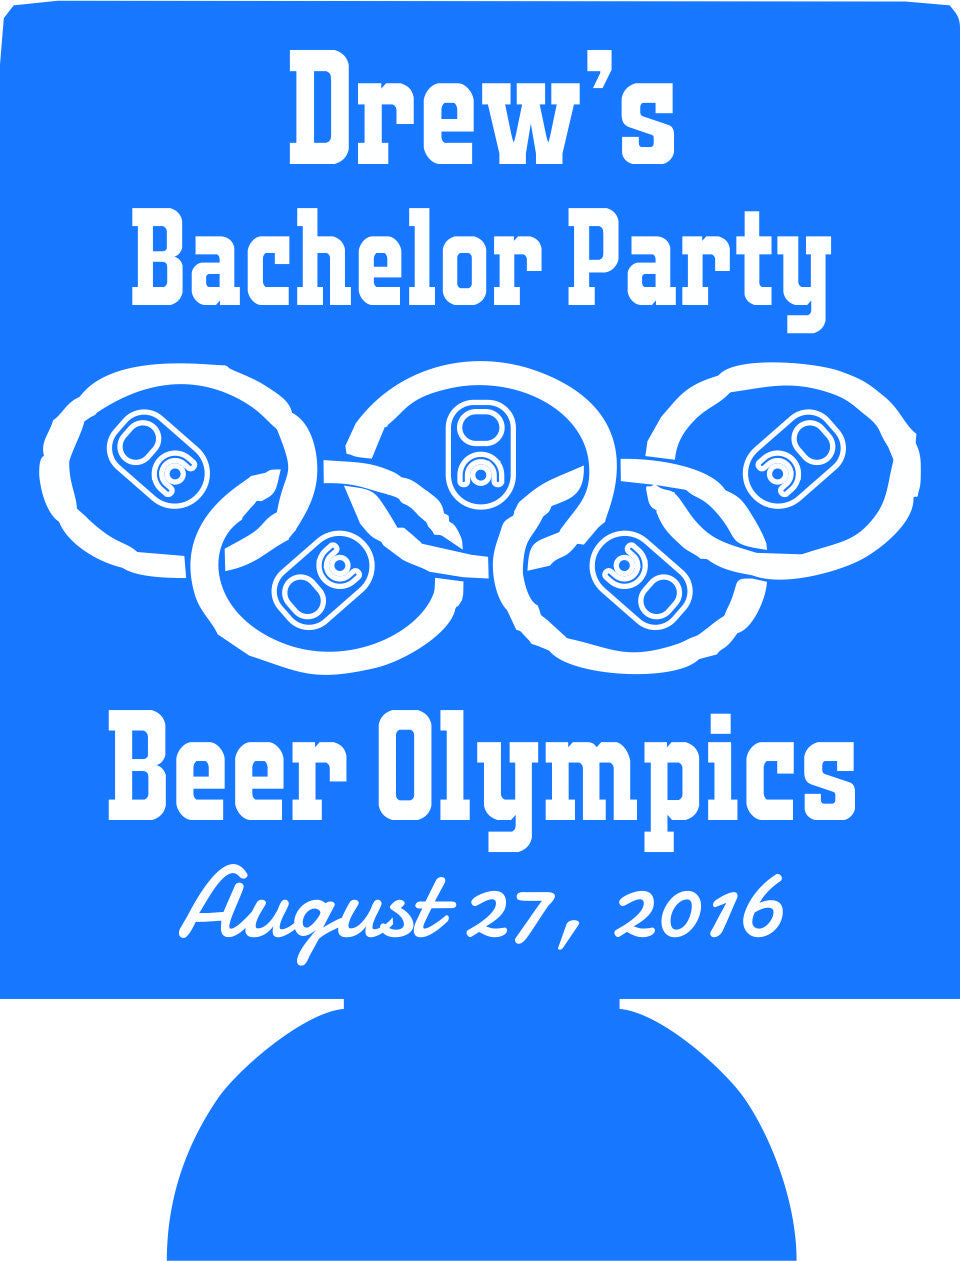 Beer Olympics Bachelor Party koozies